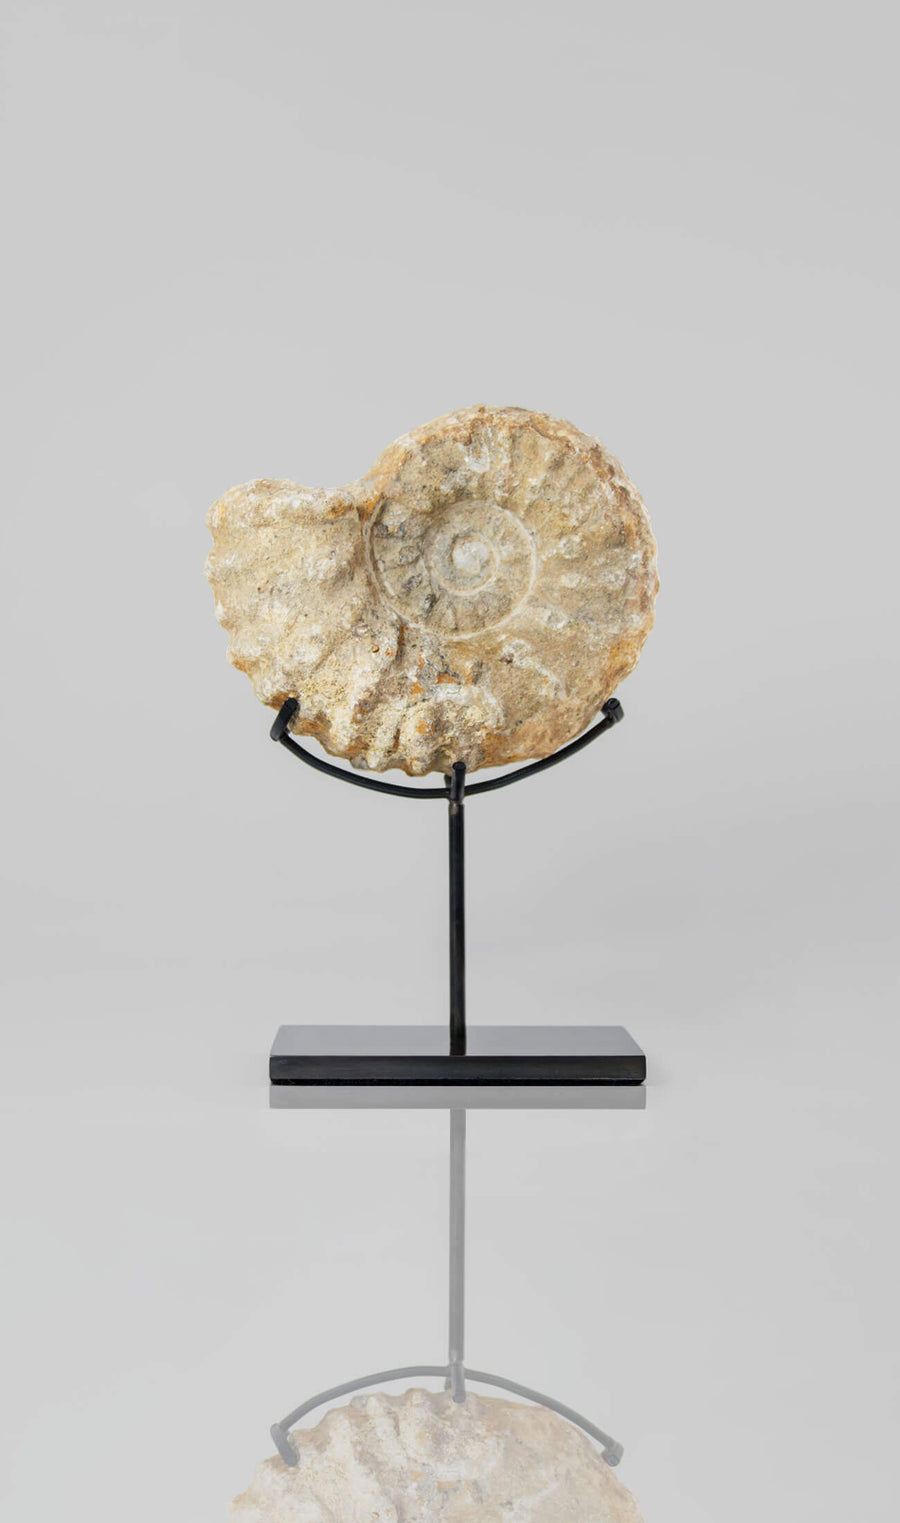 Beautifully presented Mantelliceras ammonite fossil for sale measuring 185mm on our custom designed bronze stand